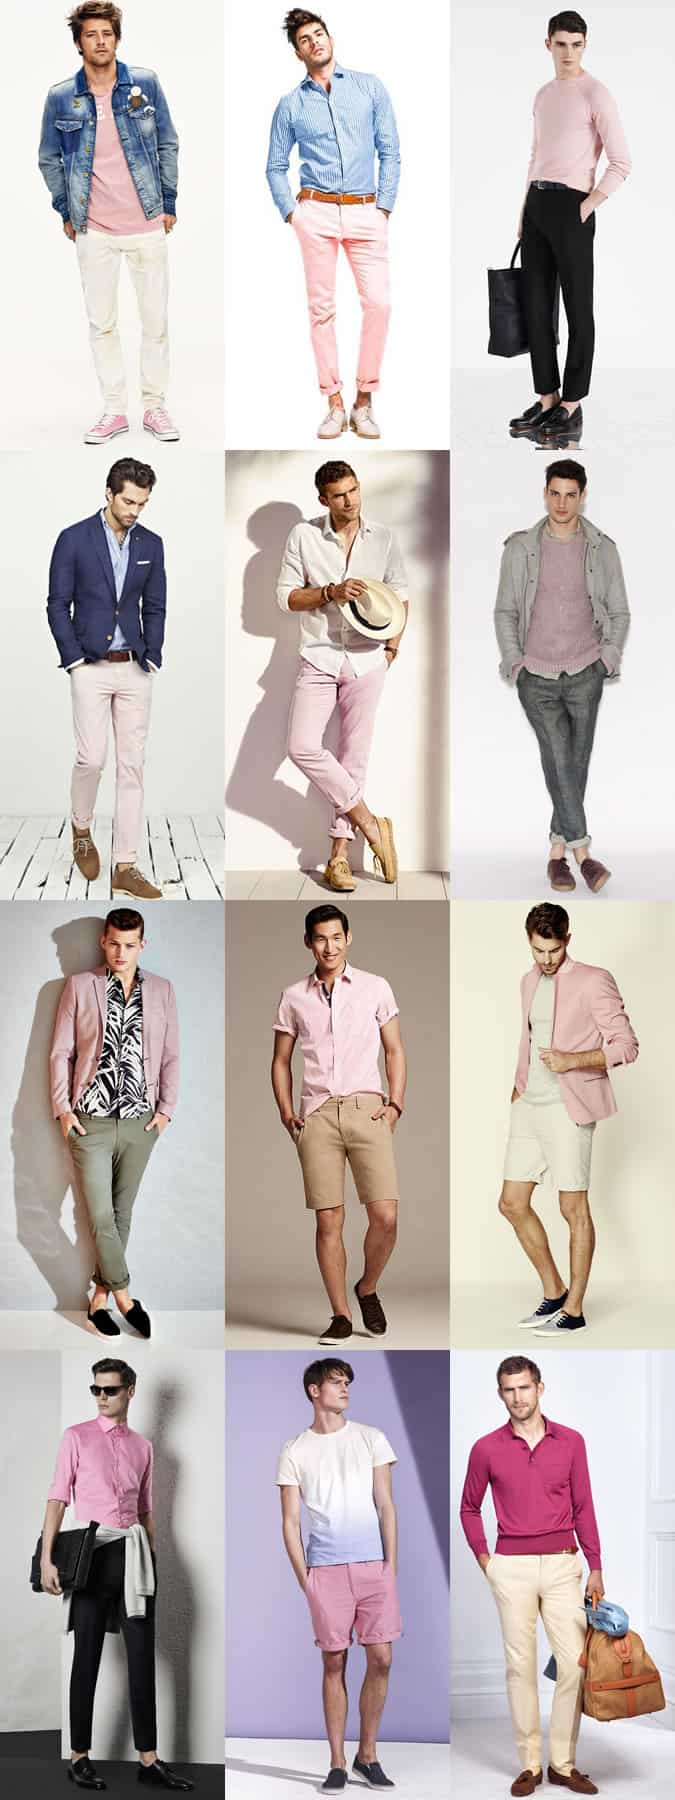 Men's Pink Clothing Outfit Inspiration Lookbook